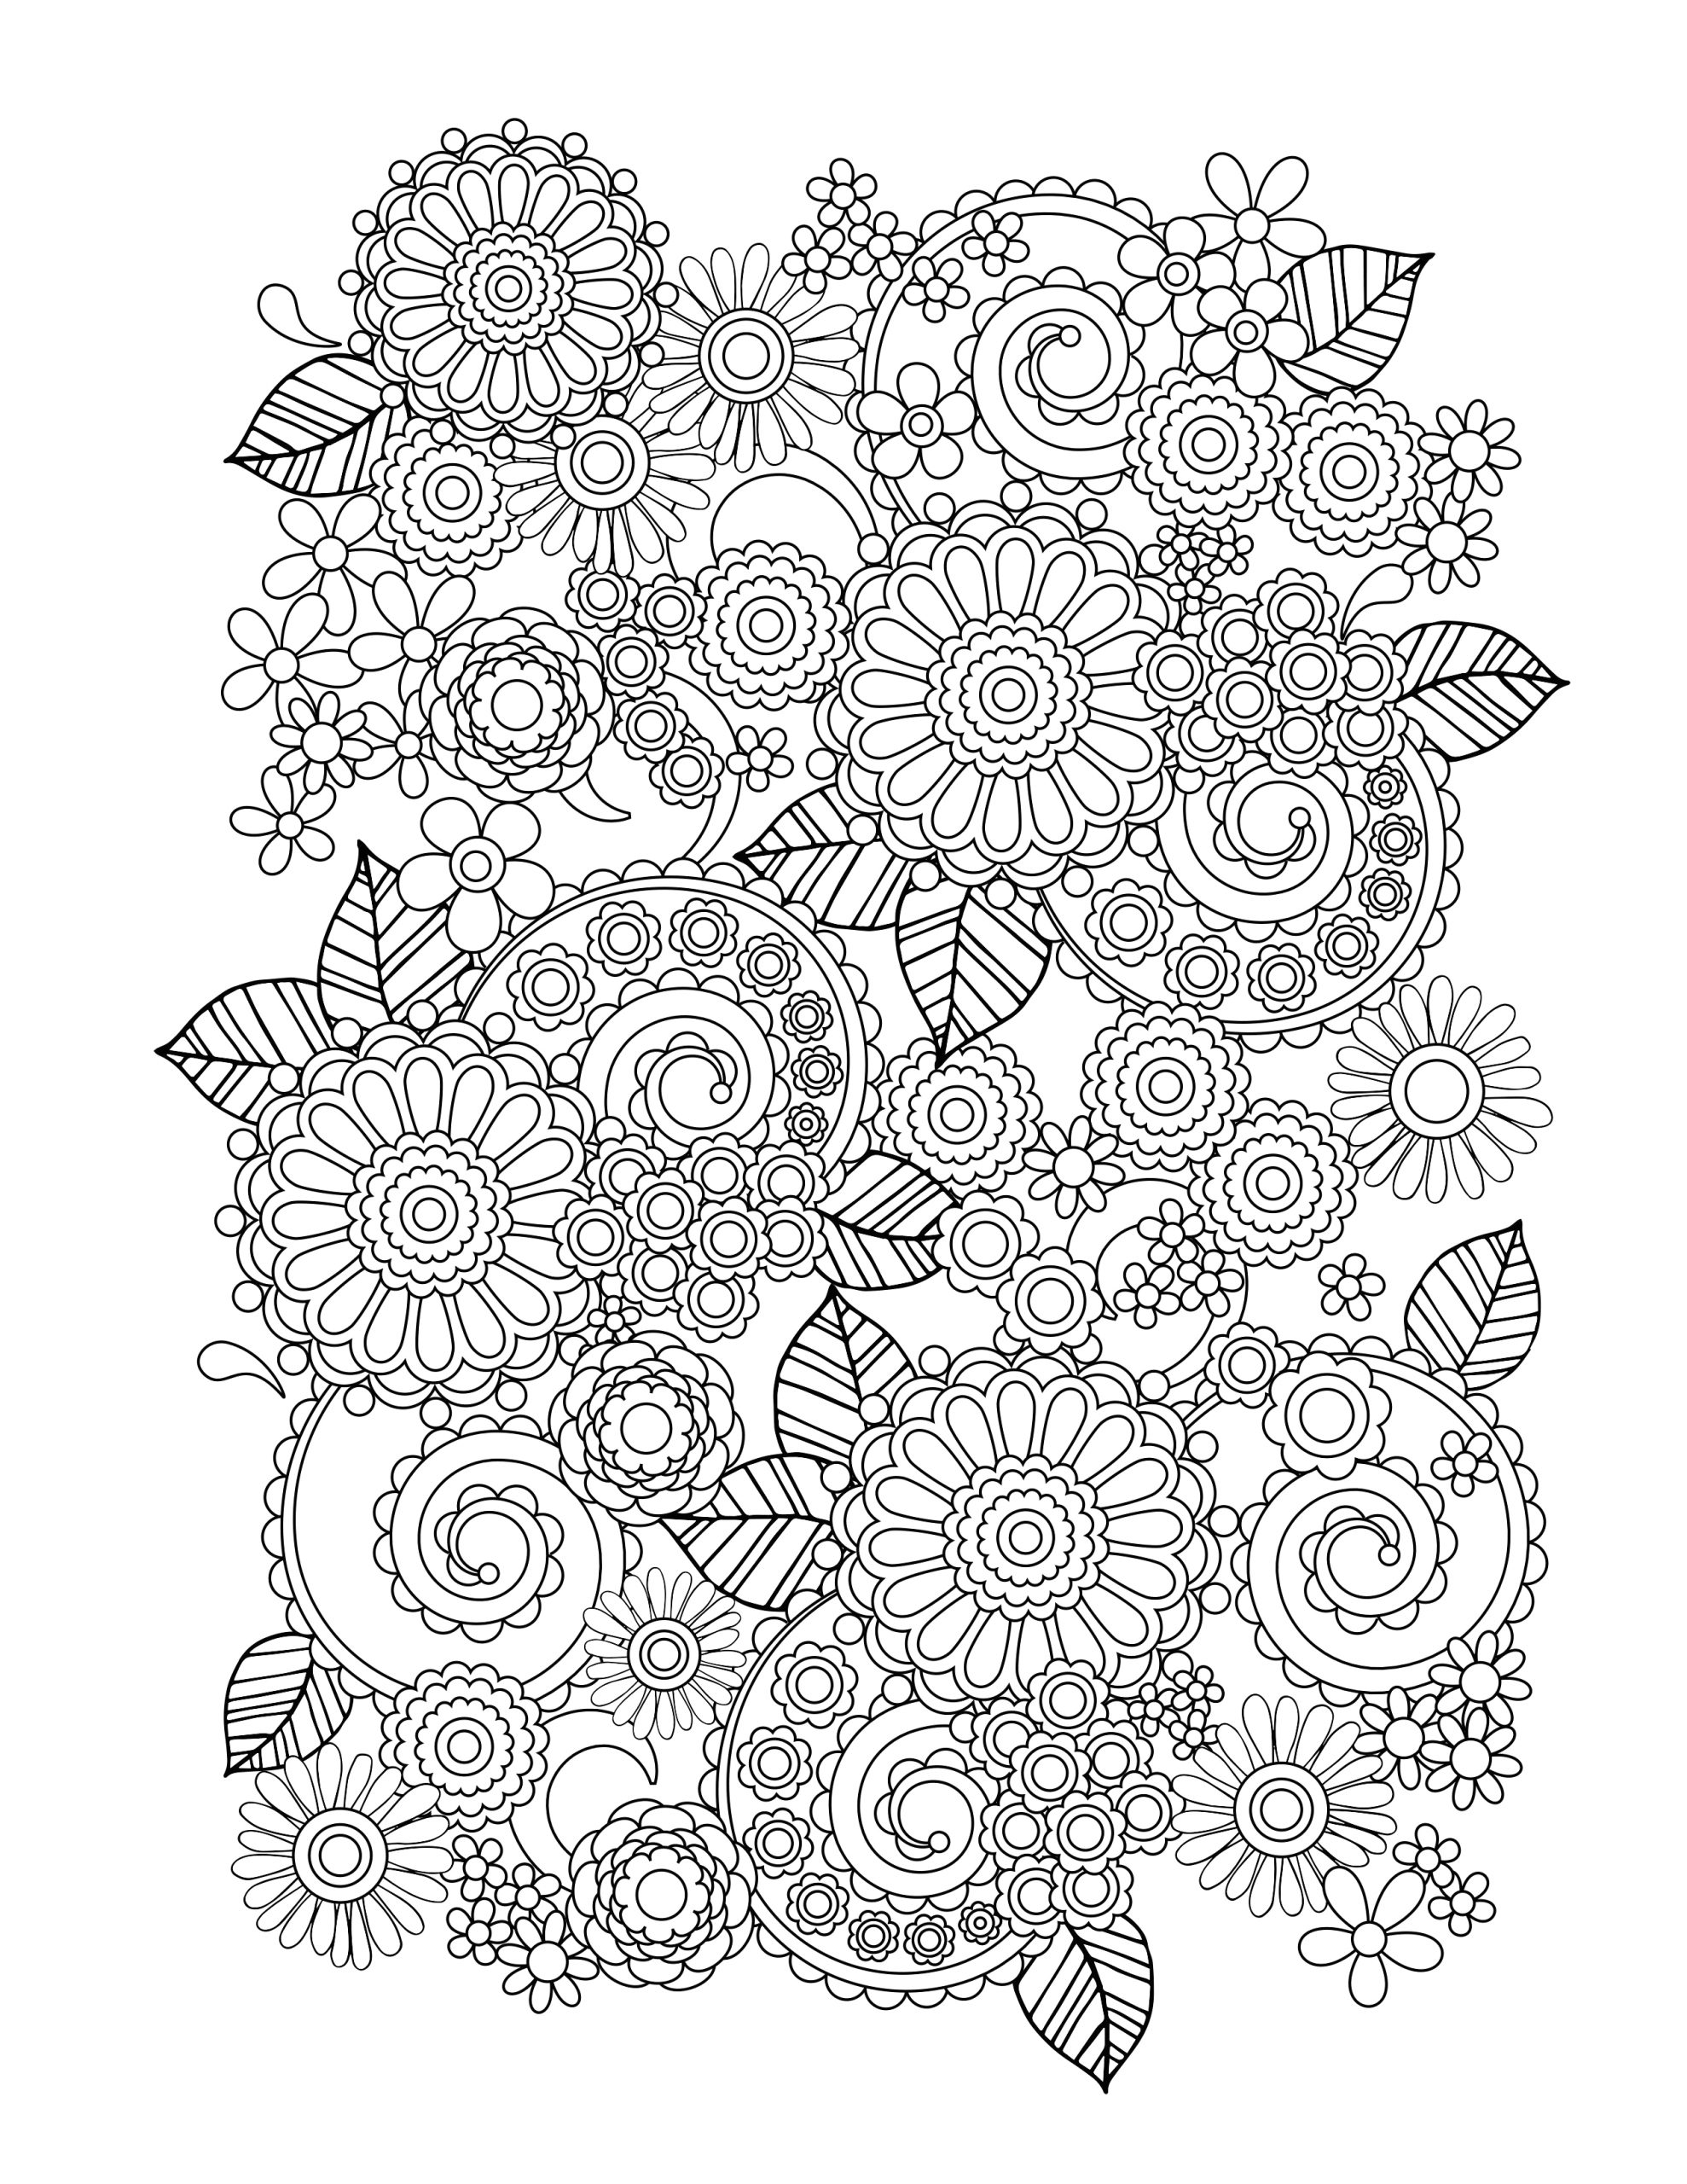 Free Printable Coloring Pages for Adults Flowers Flower Coloring Pages for Adults Best Coloring Pages for